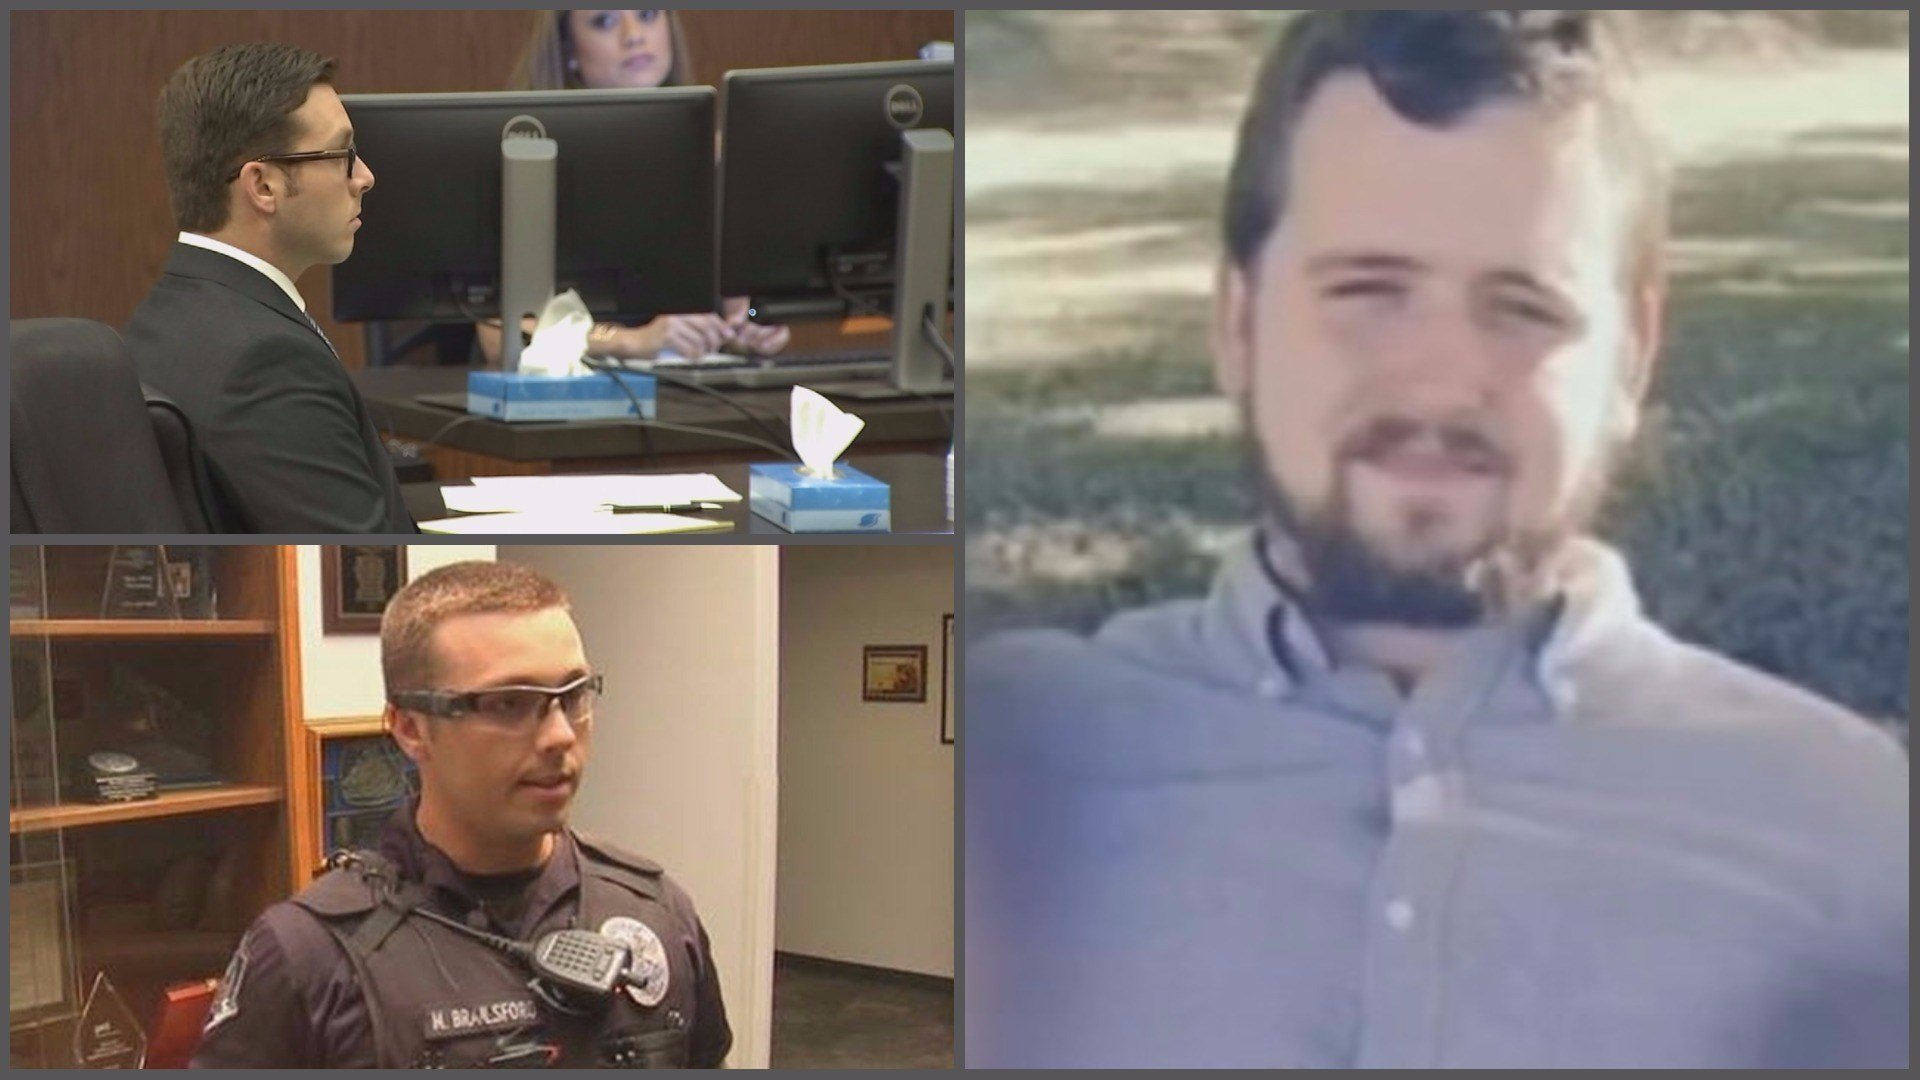 Former Mesa police officer Mitch Brailsford (left) is being tried for murder in the January 2016 shooting death of Daniel Shaver (right) at a Mesa hotel. (Source: 3TV/CBS 5 file photos)